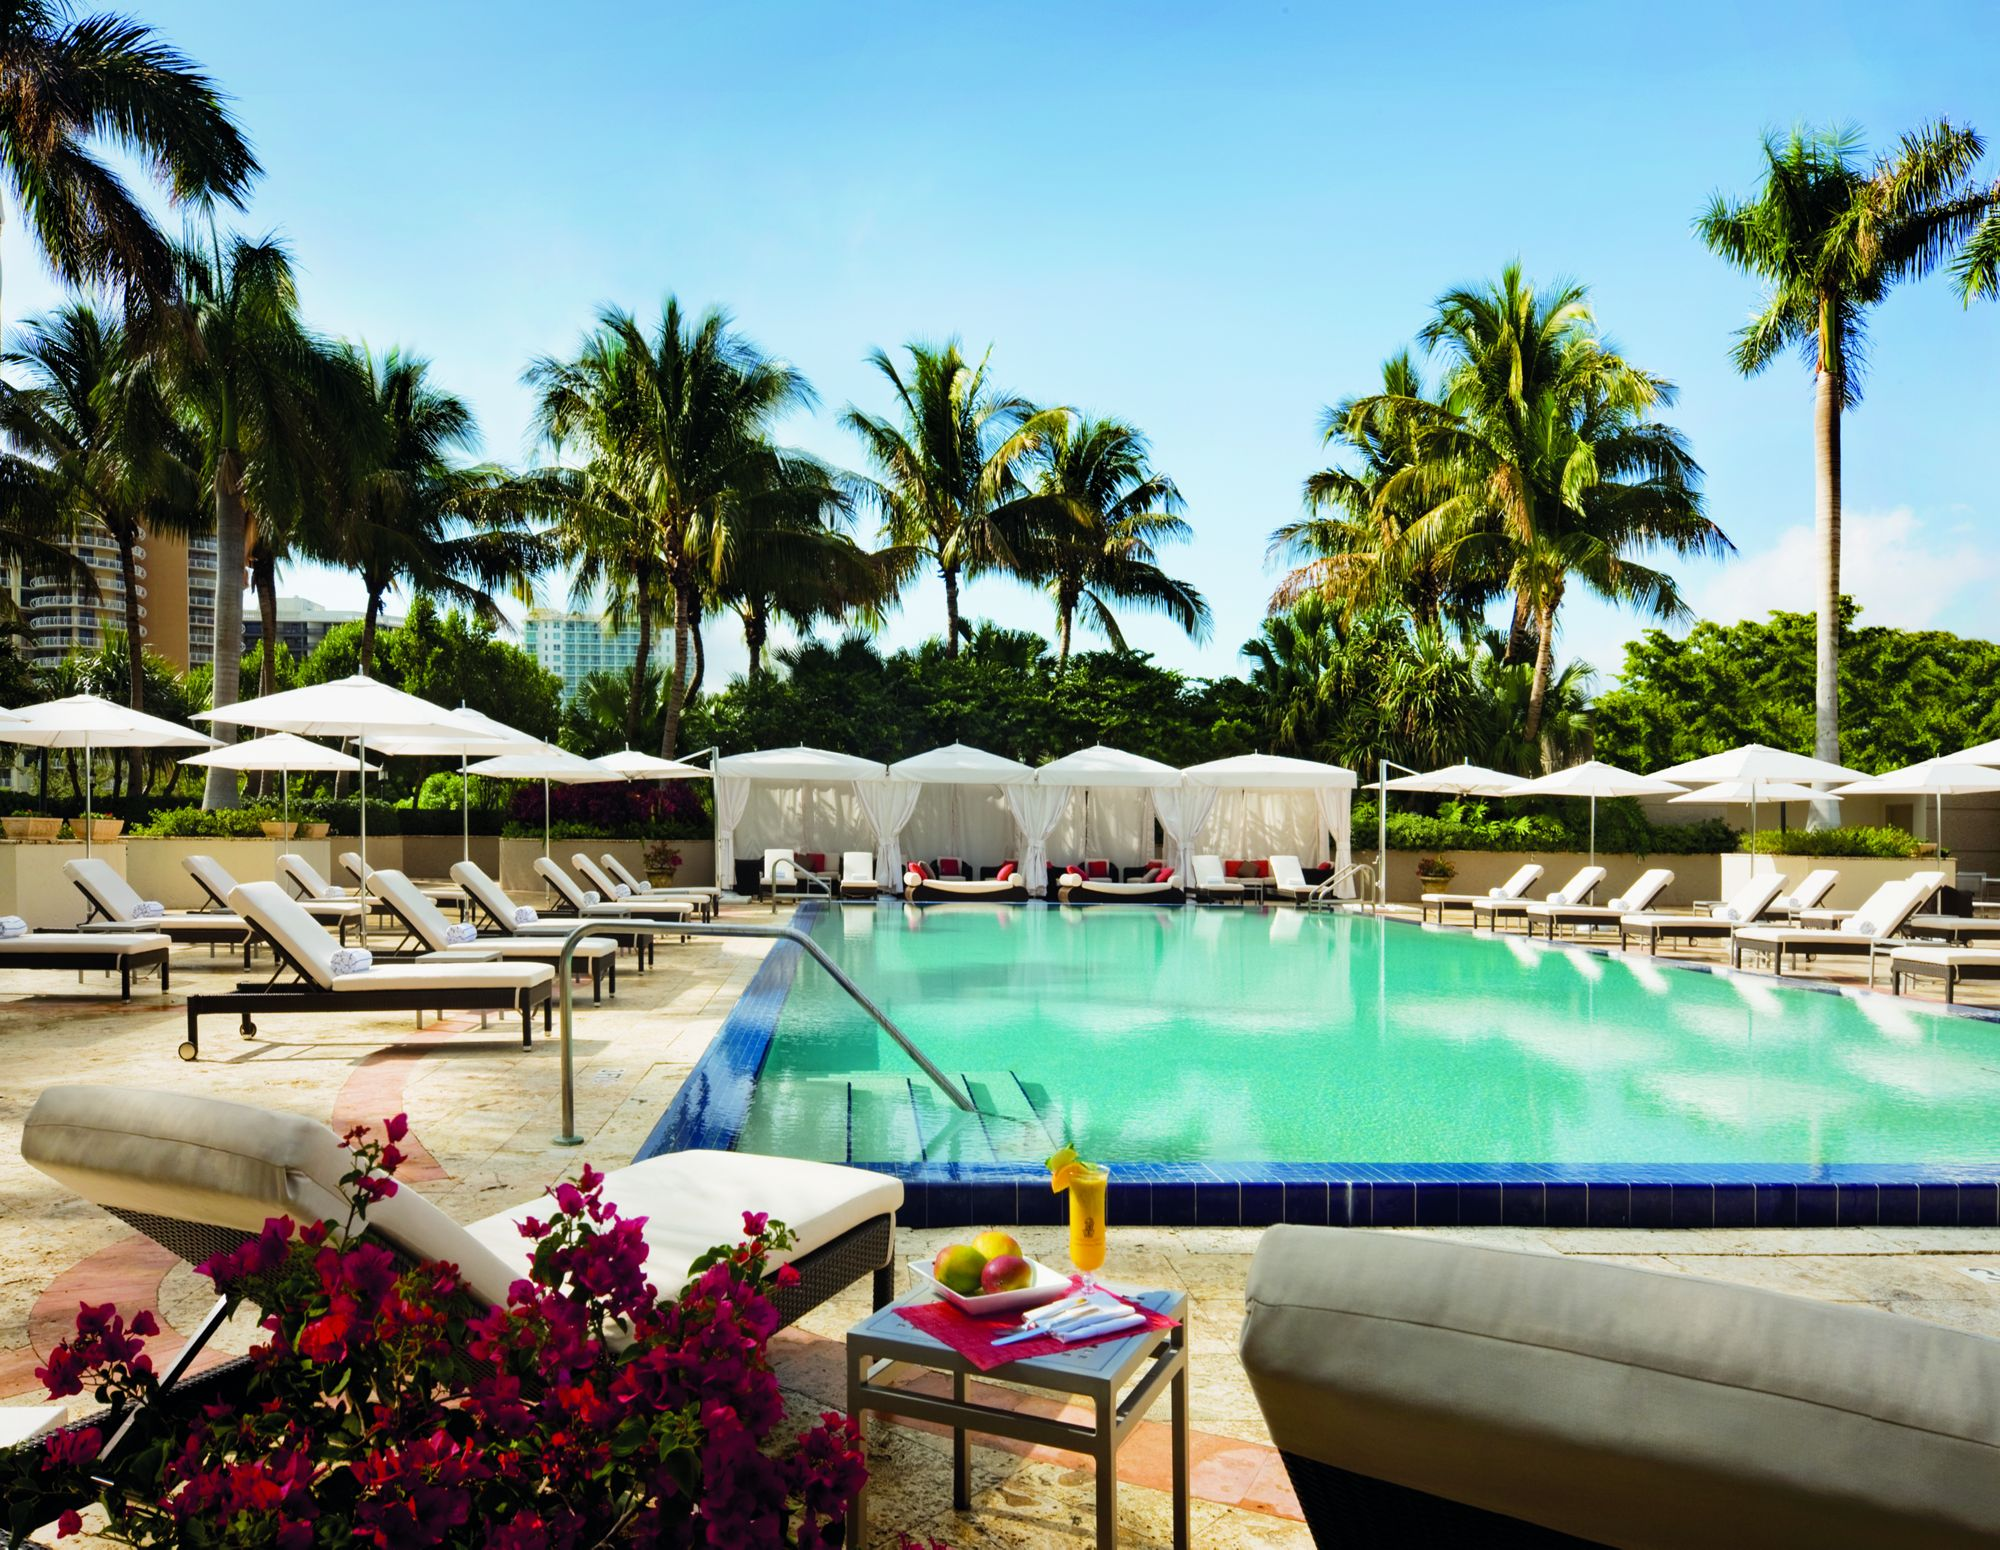 Cabanas surround the hotel's tropical pool deck